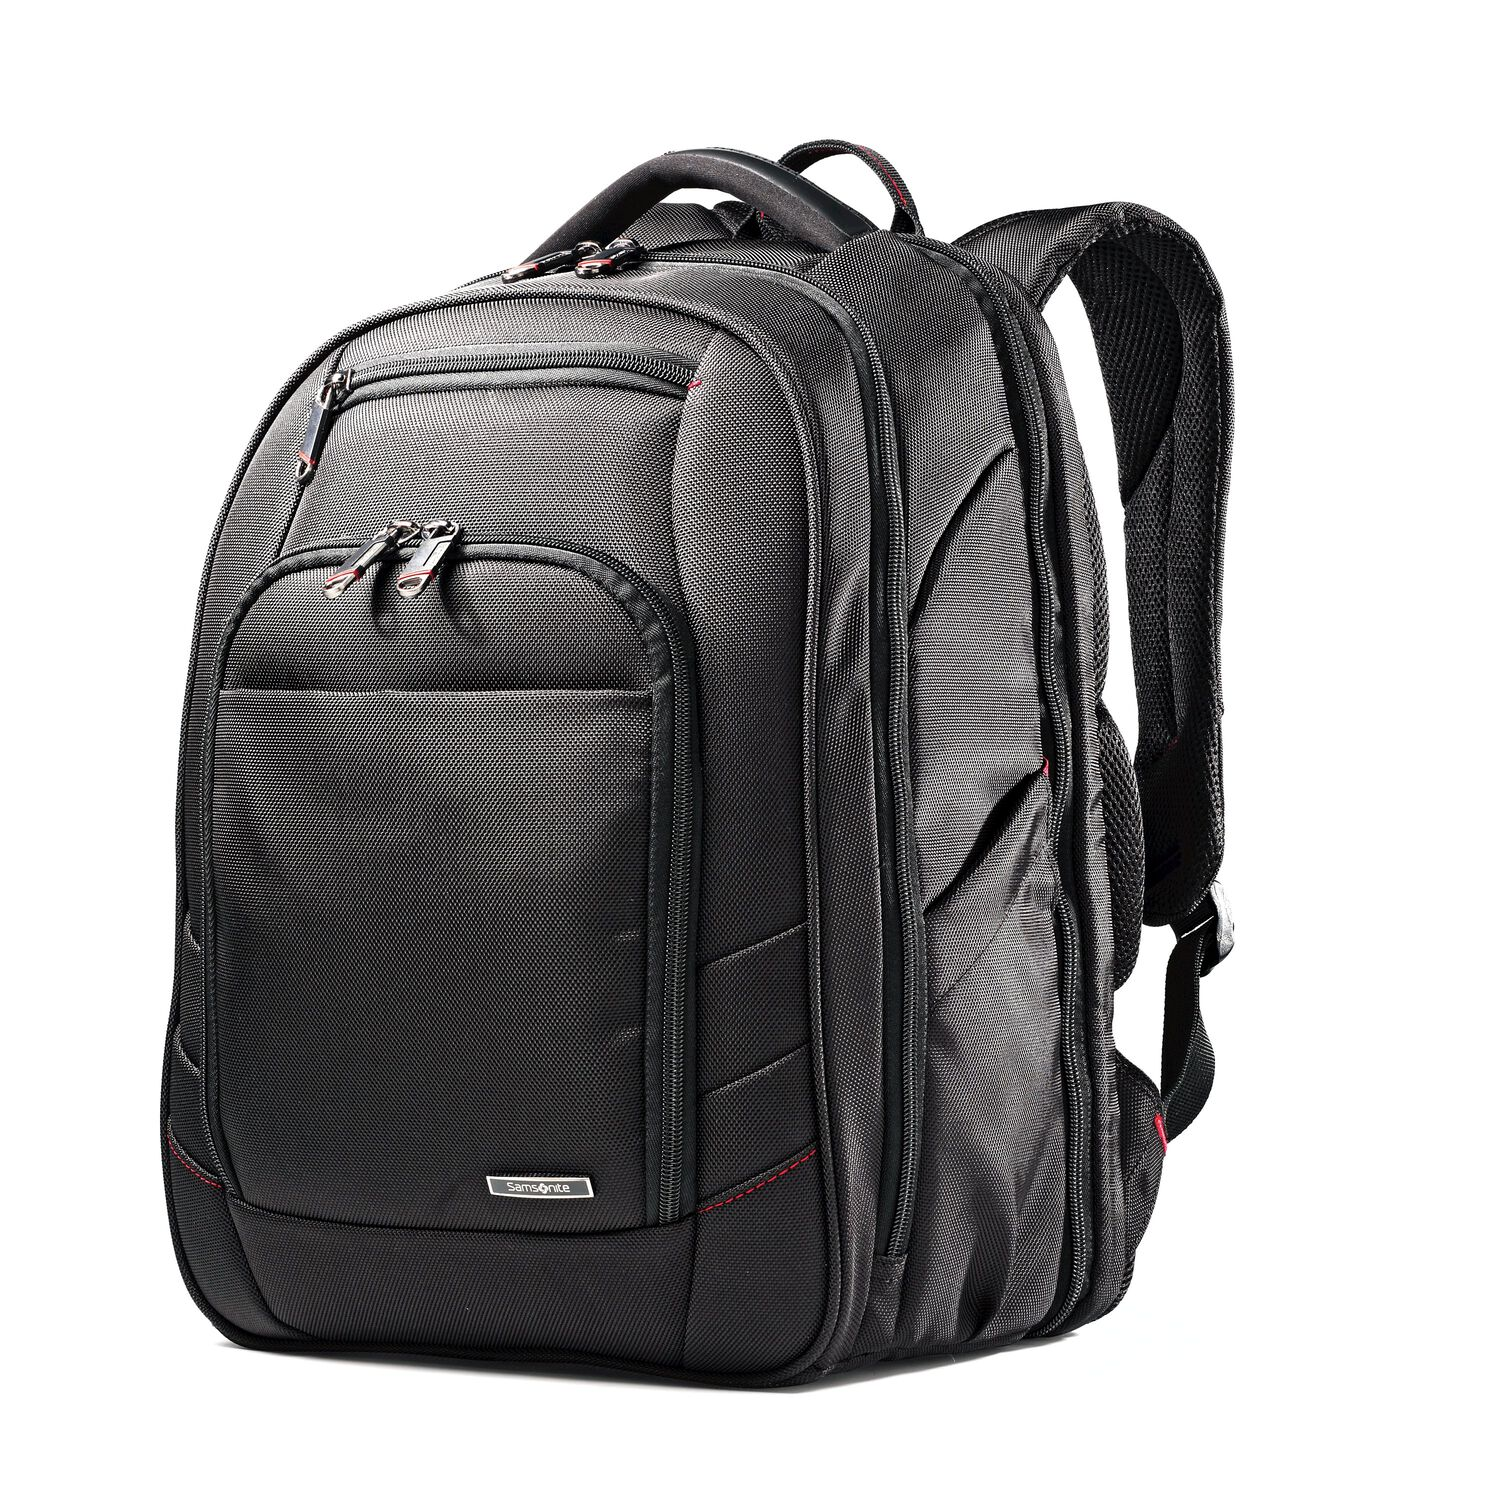 4359cd290de7 Samsonite Xenon 2 Checkpoint Friendly Laptop Backpack